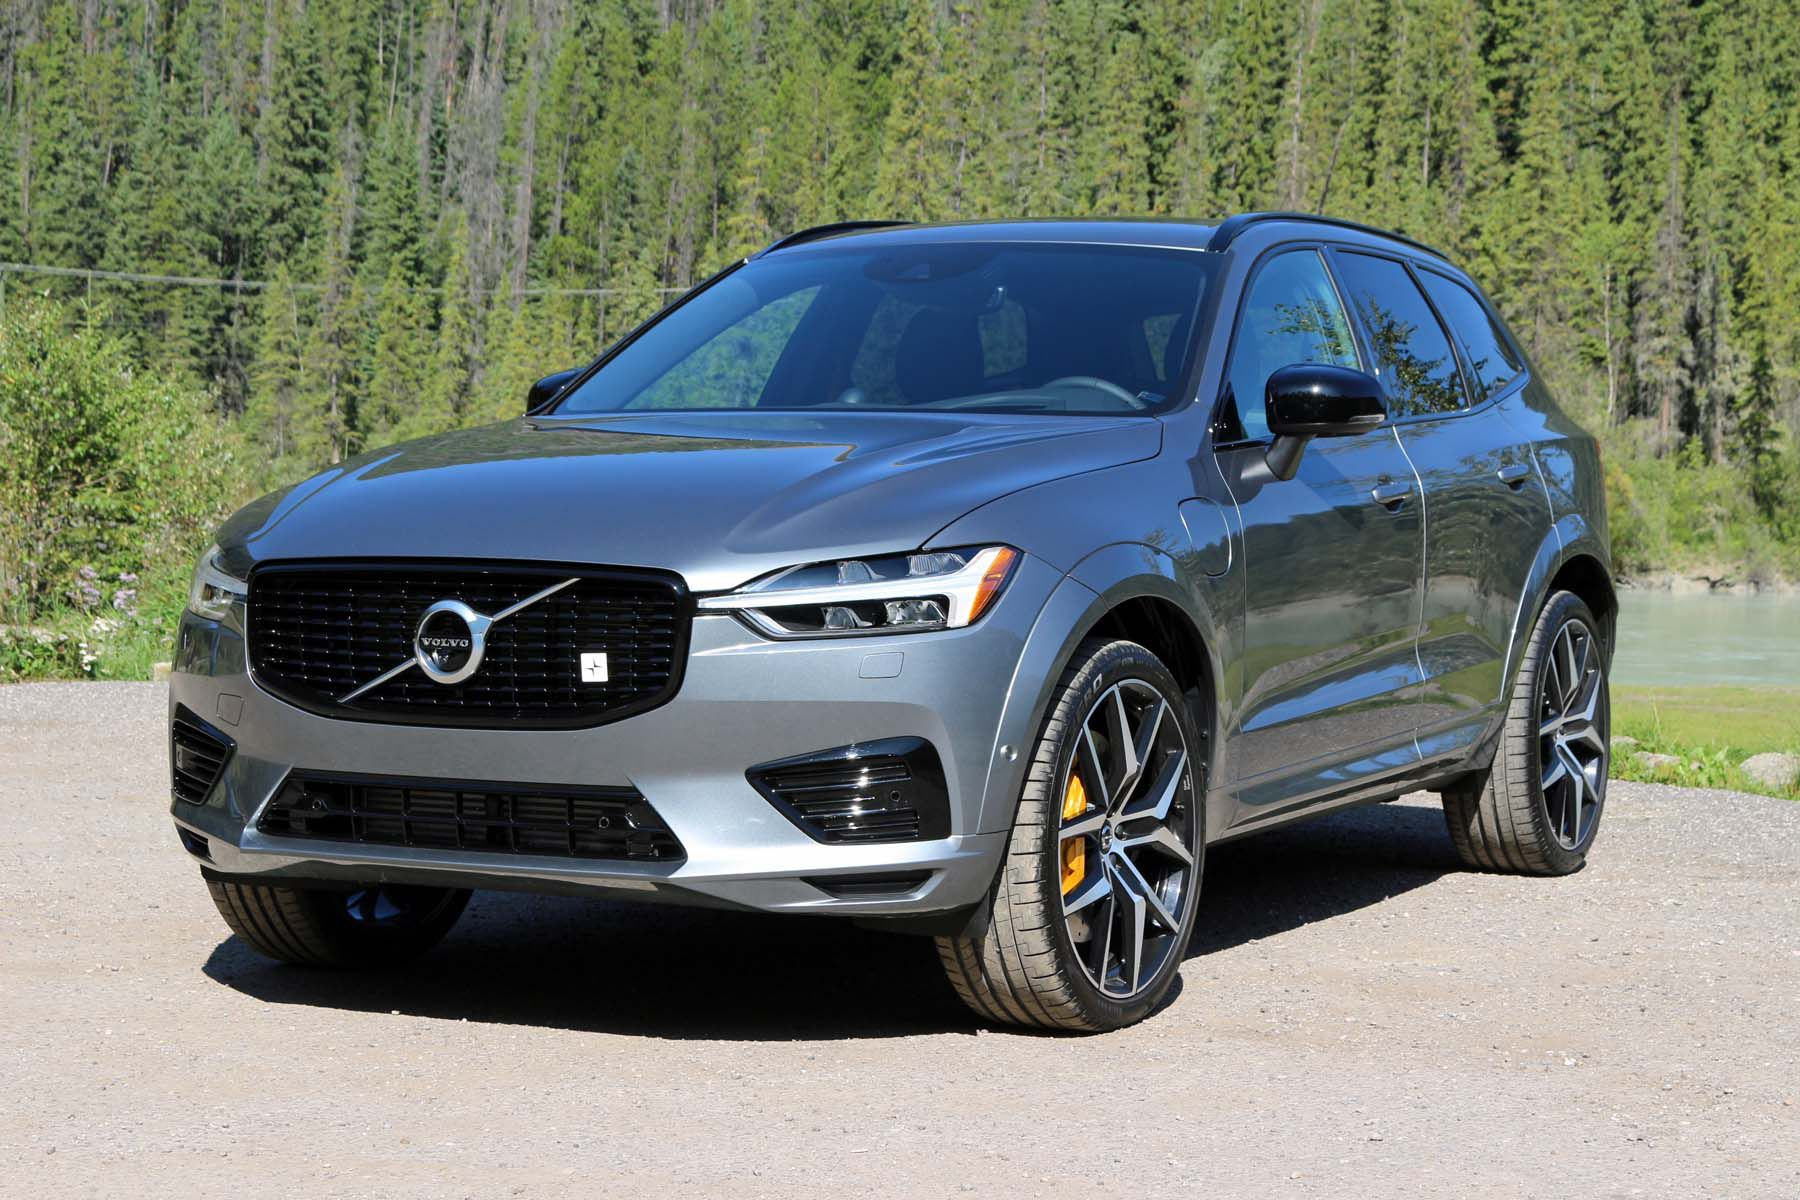 2020 Volvo XC60 Polestar Engineered